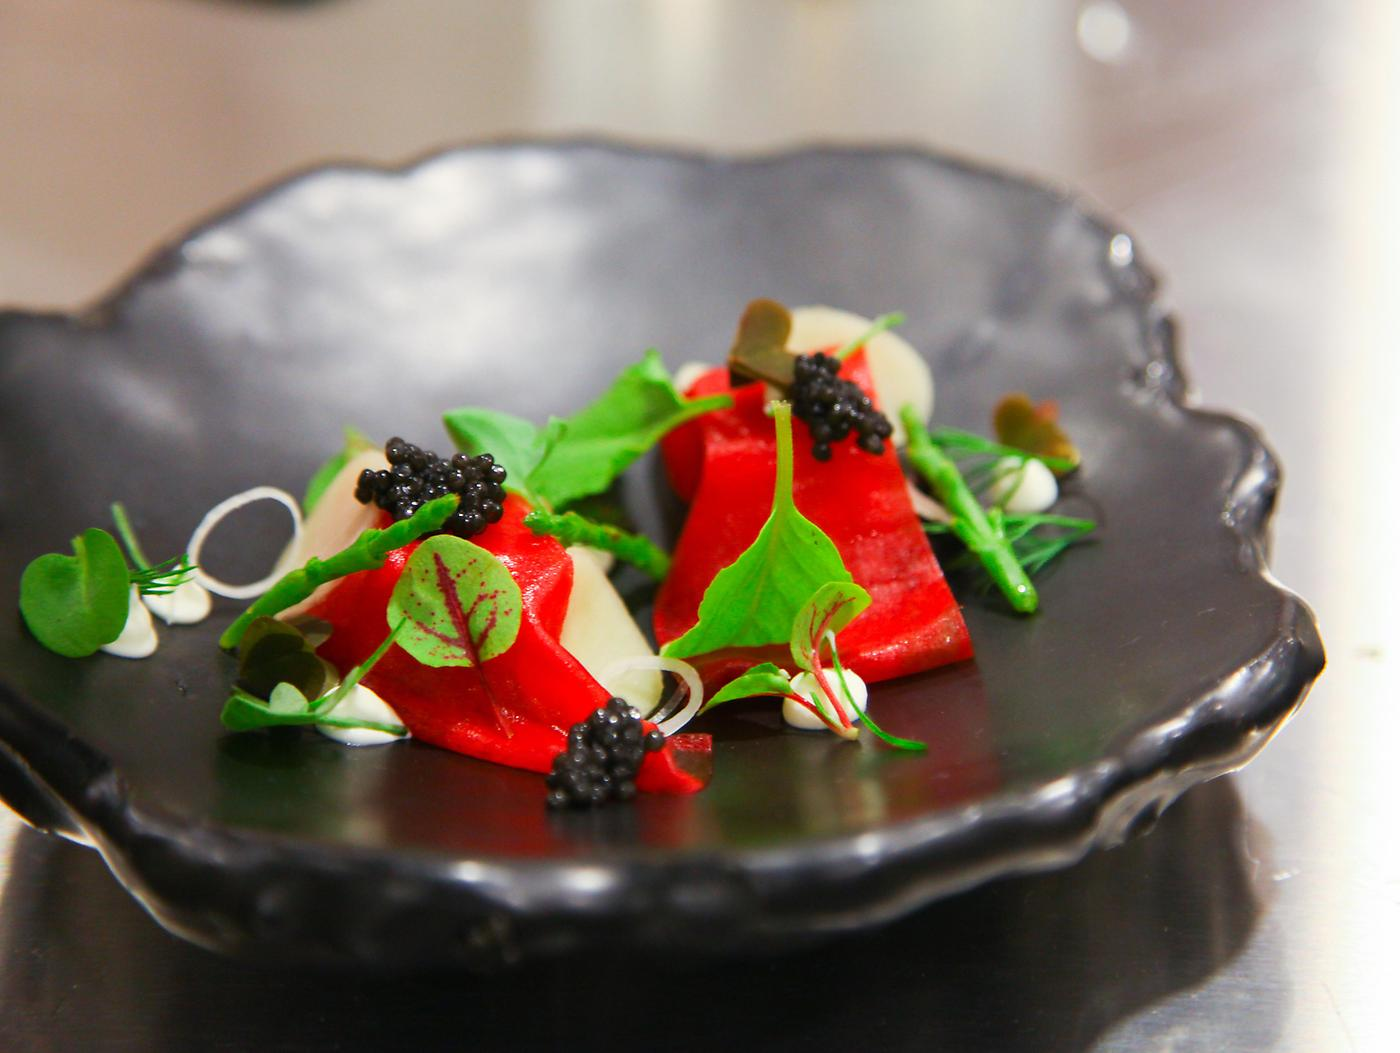 The Restaurant at Meadowood, This Lovely Dish is Pine-Cured Venision with Tuna & Assorted Sorrels